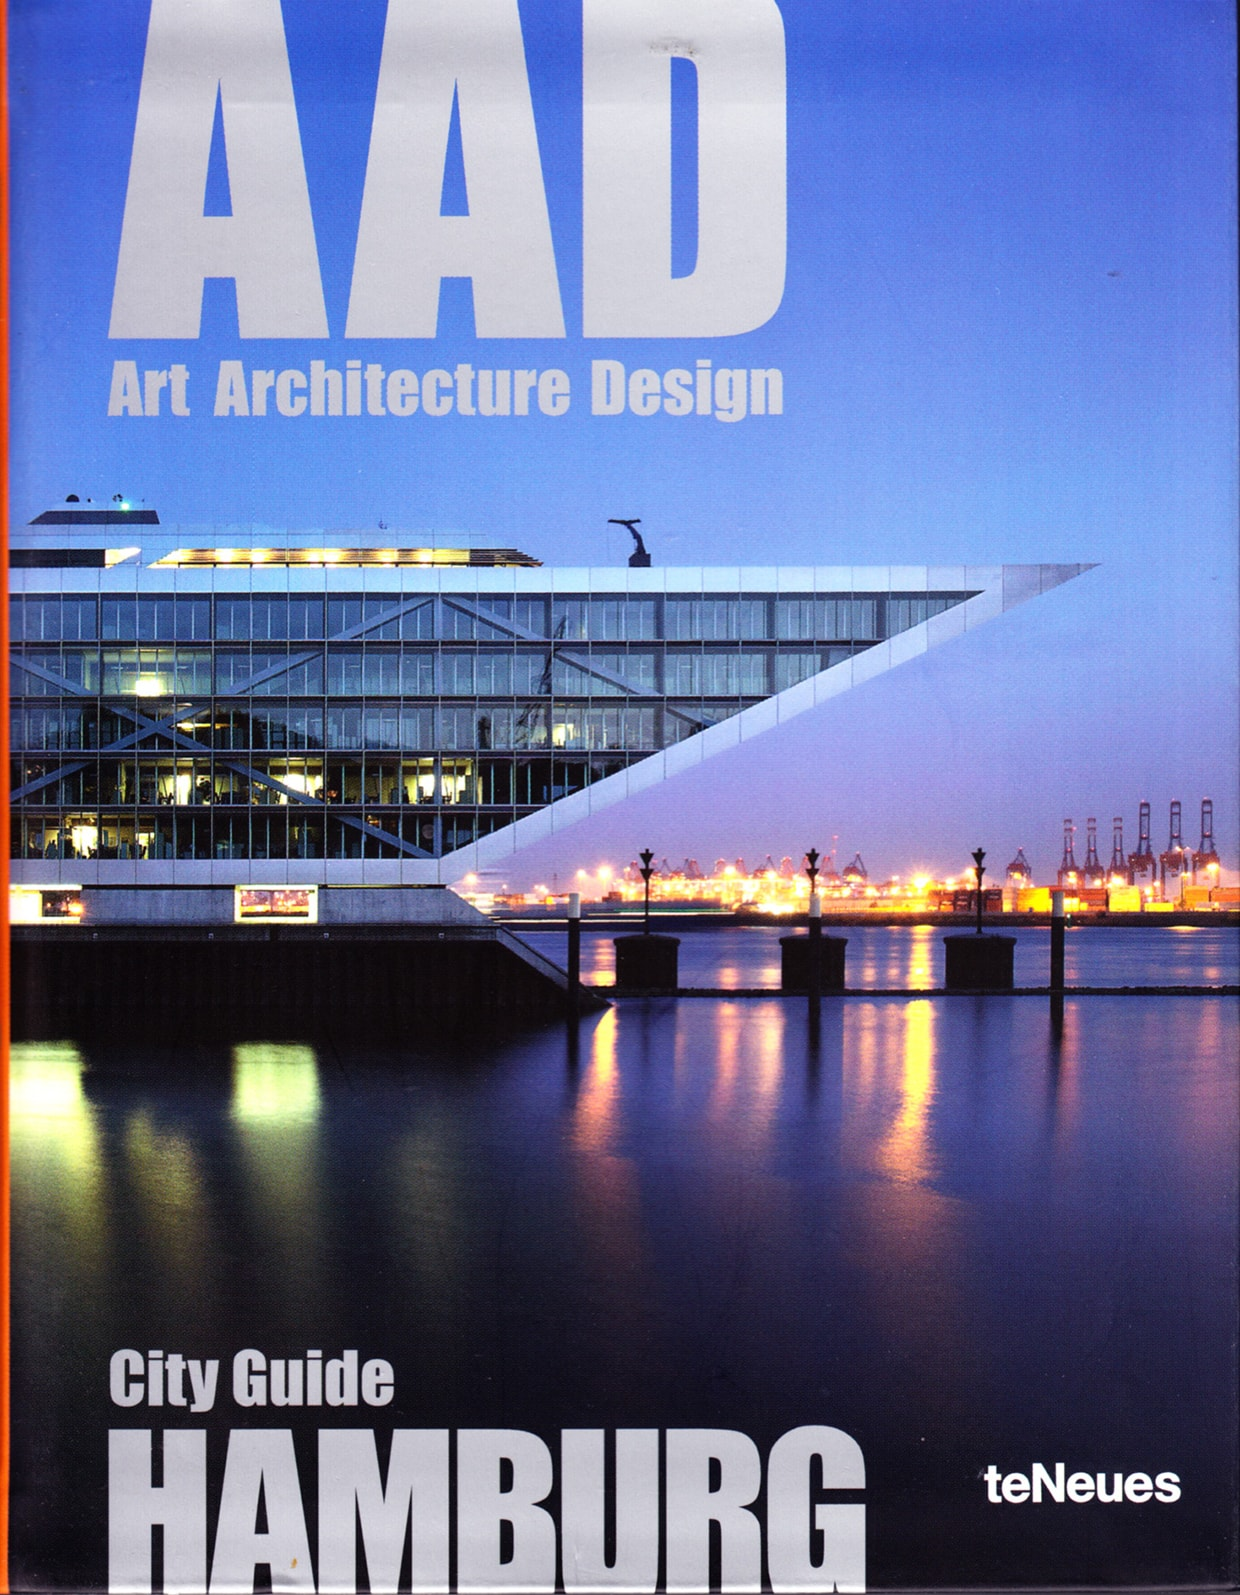 Art Architecture Design